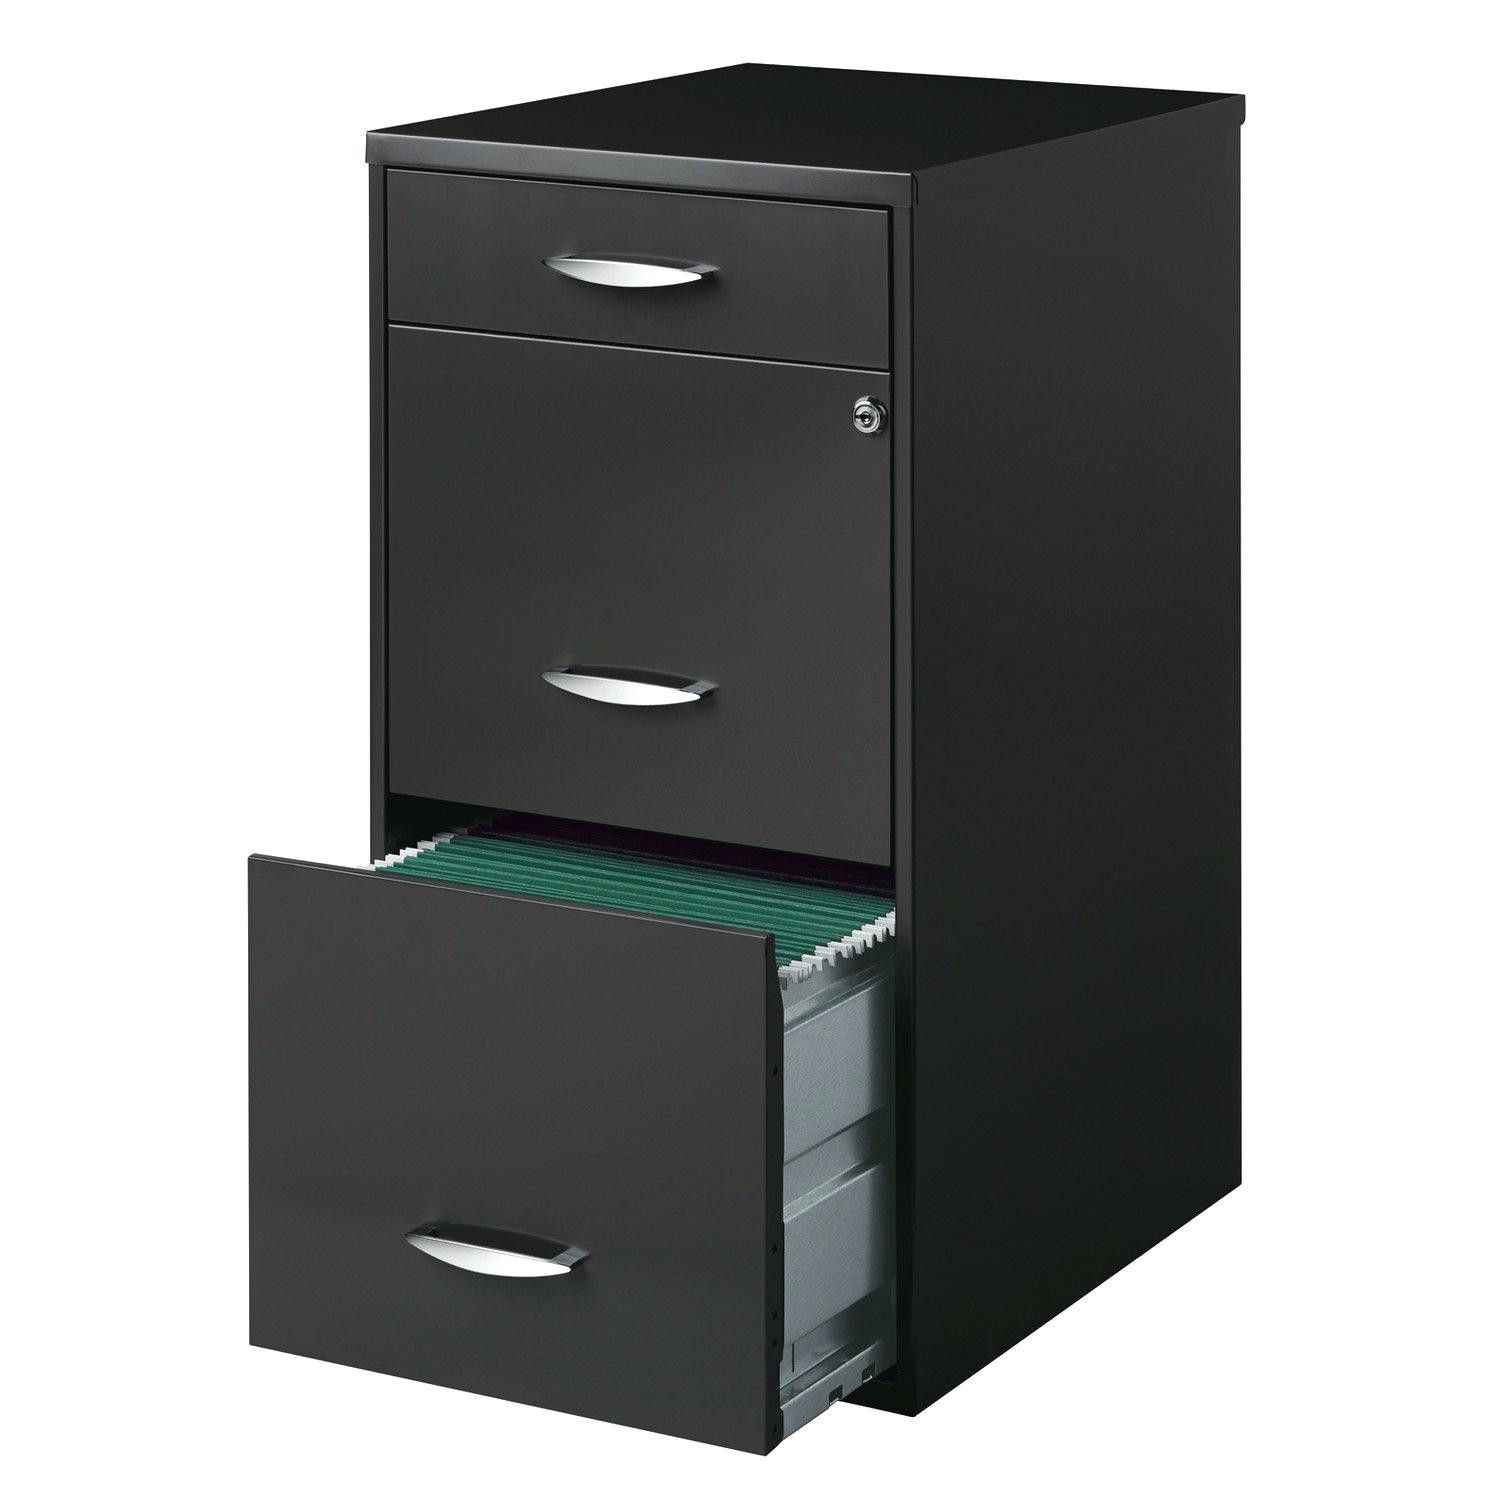 best tubs stackable storage idea target of tub ideas and plastic image walmart decors bins design